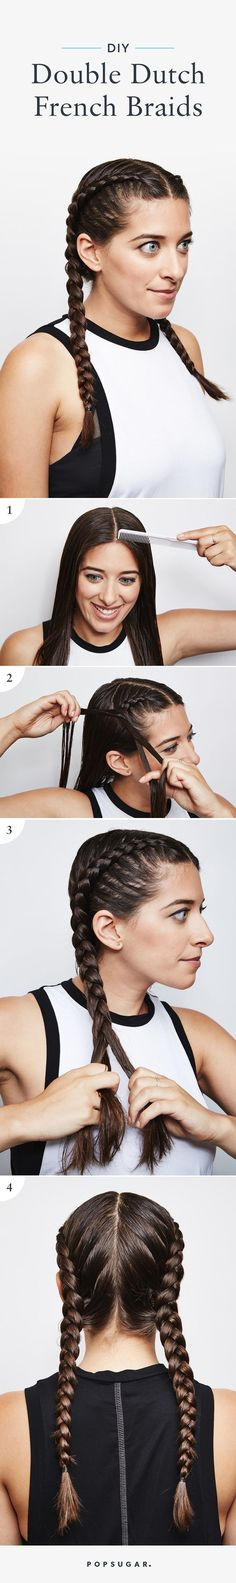 Double French Braids for your next gym visit. - Fitness is life, fitness is BAE! <3 Tap the pin now to discover 3D Print Fitness Leggings from super hero leggings, gym leggings, fitness, leggings, and more that will make you scream YASS!!!